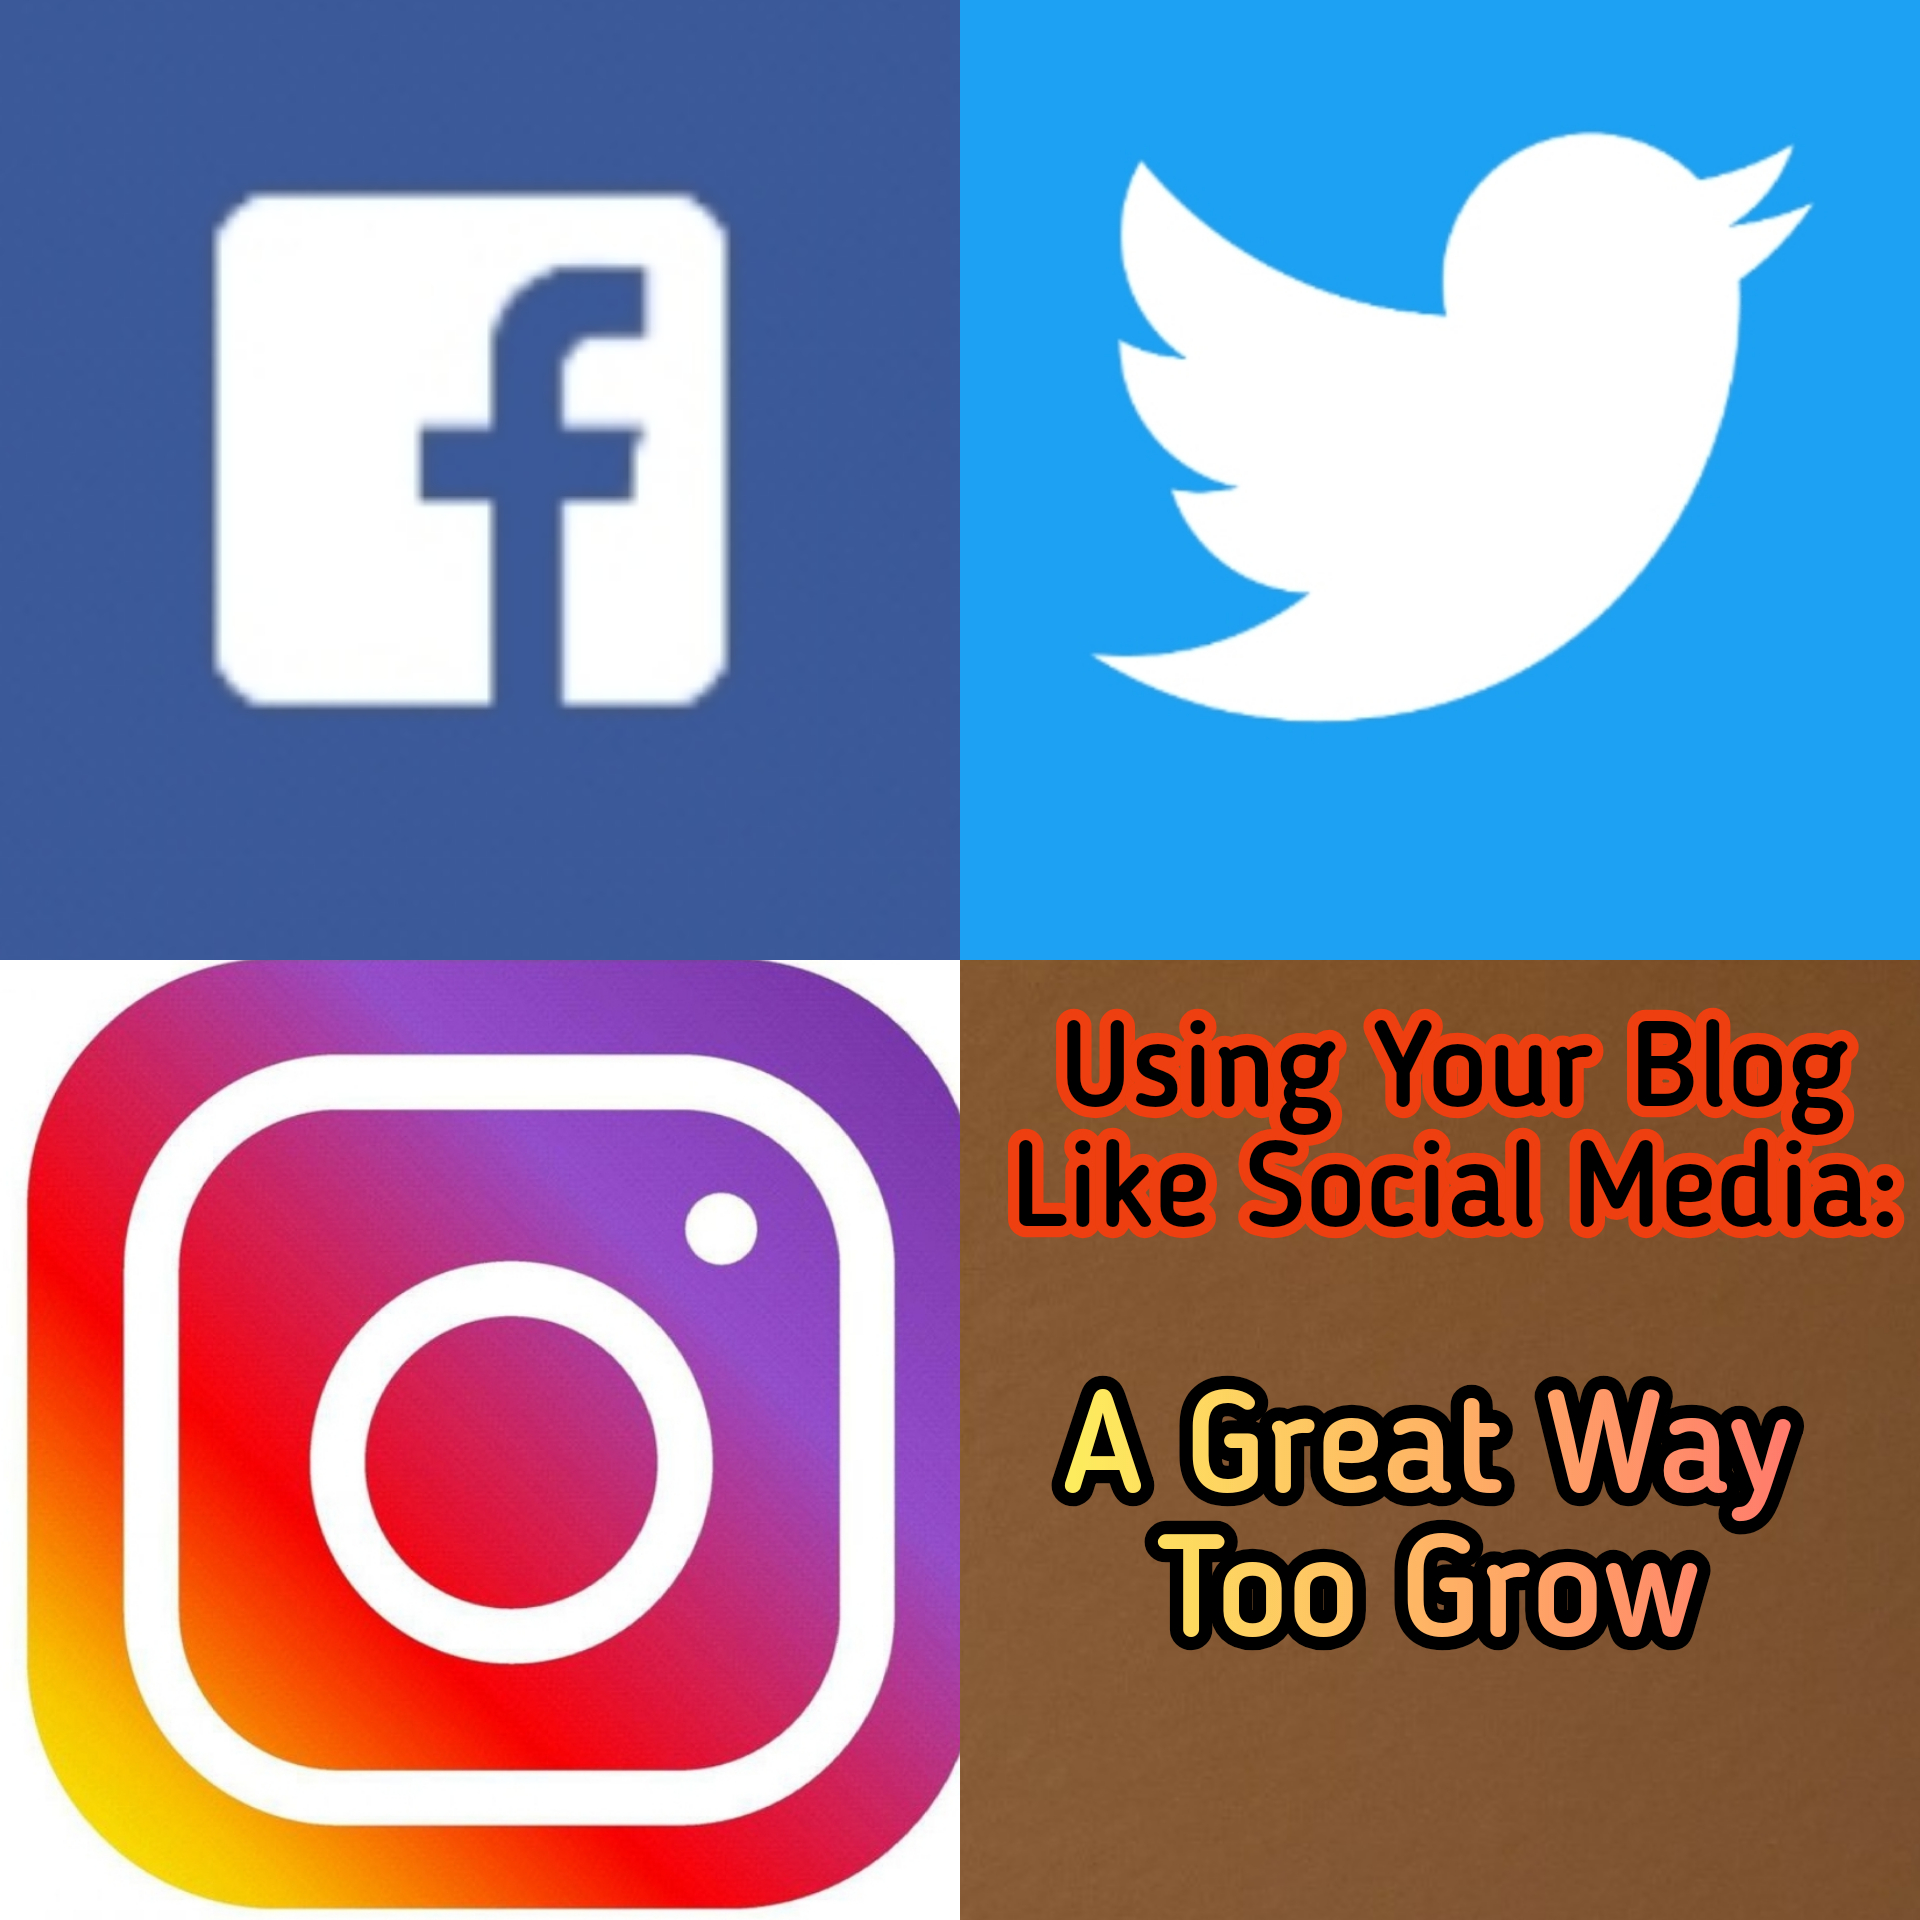 Using Your Blog Like Social Media: A Great Way Too Grow